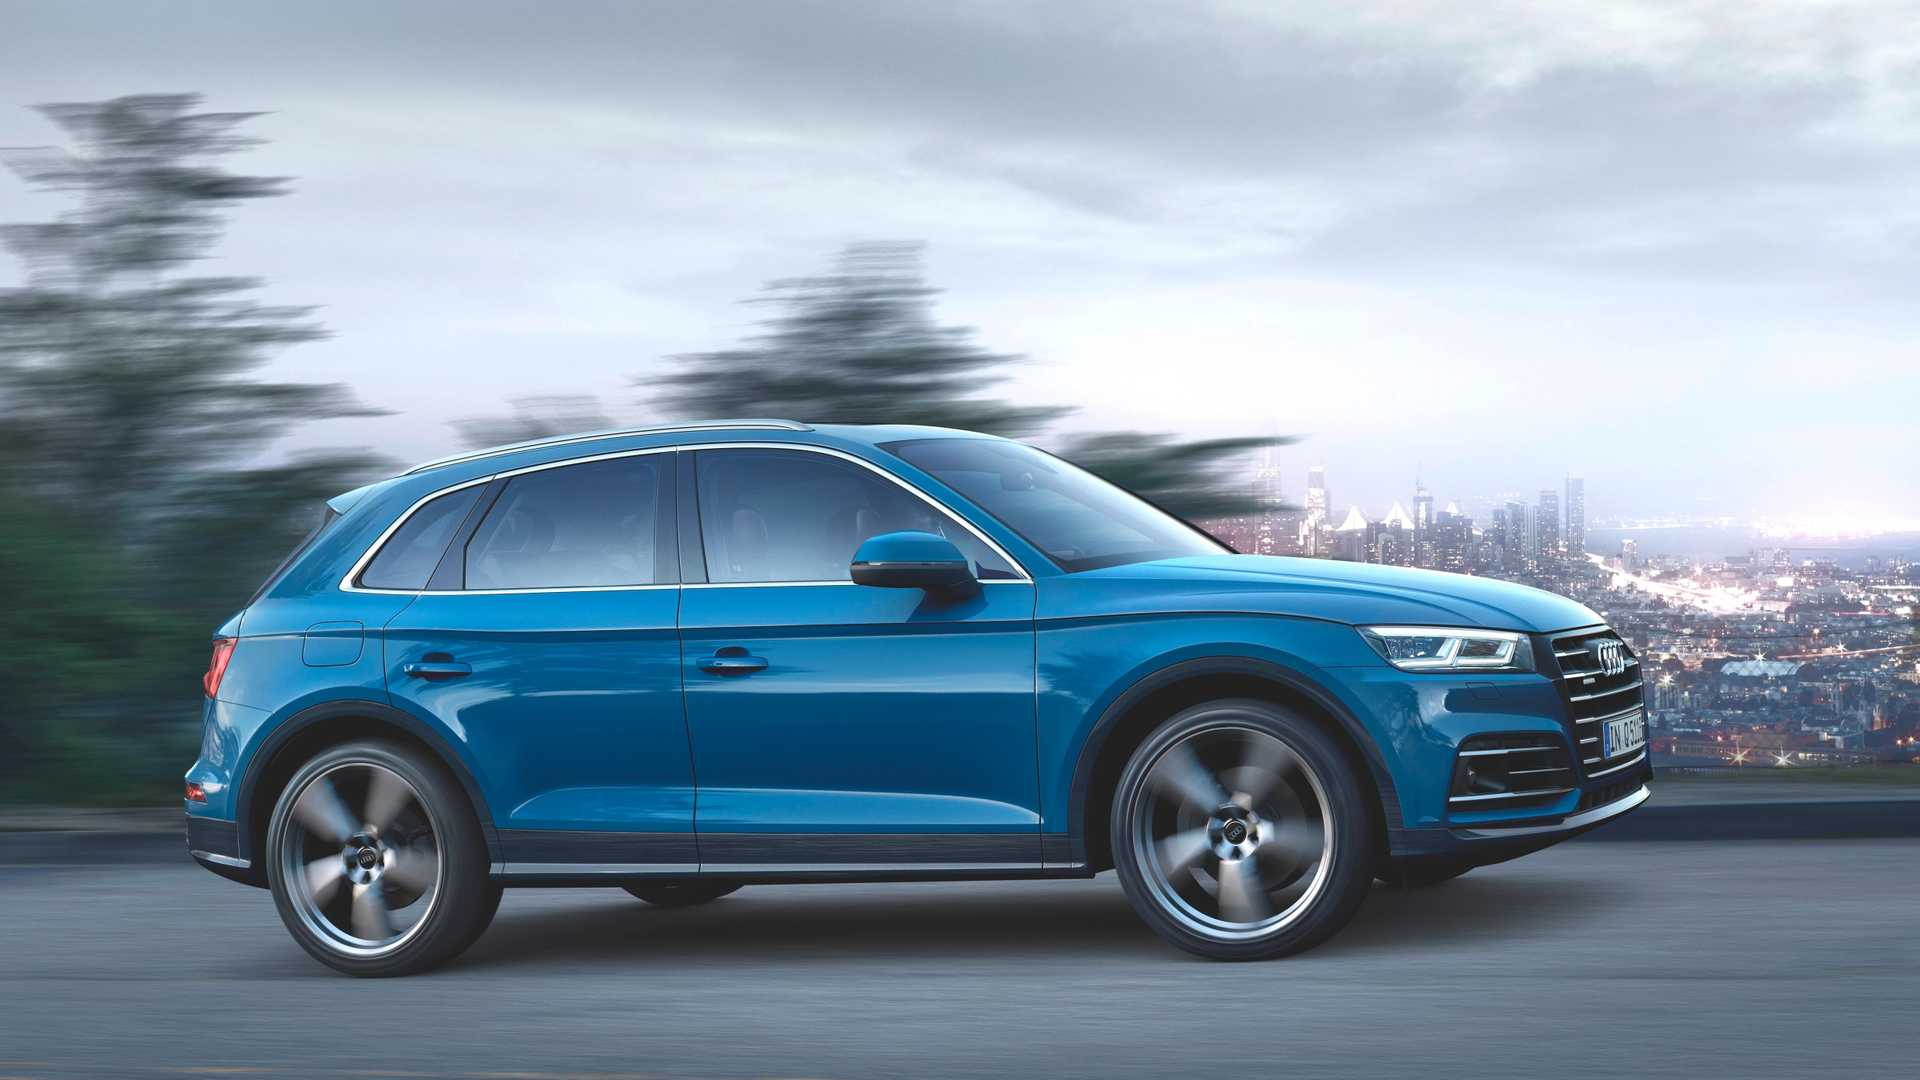 2020 Audi Q5 55 TFSI e quattro Plug-in Hybrid (Color: Turbo Blue) Side Wallpapers (1)